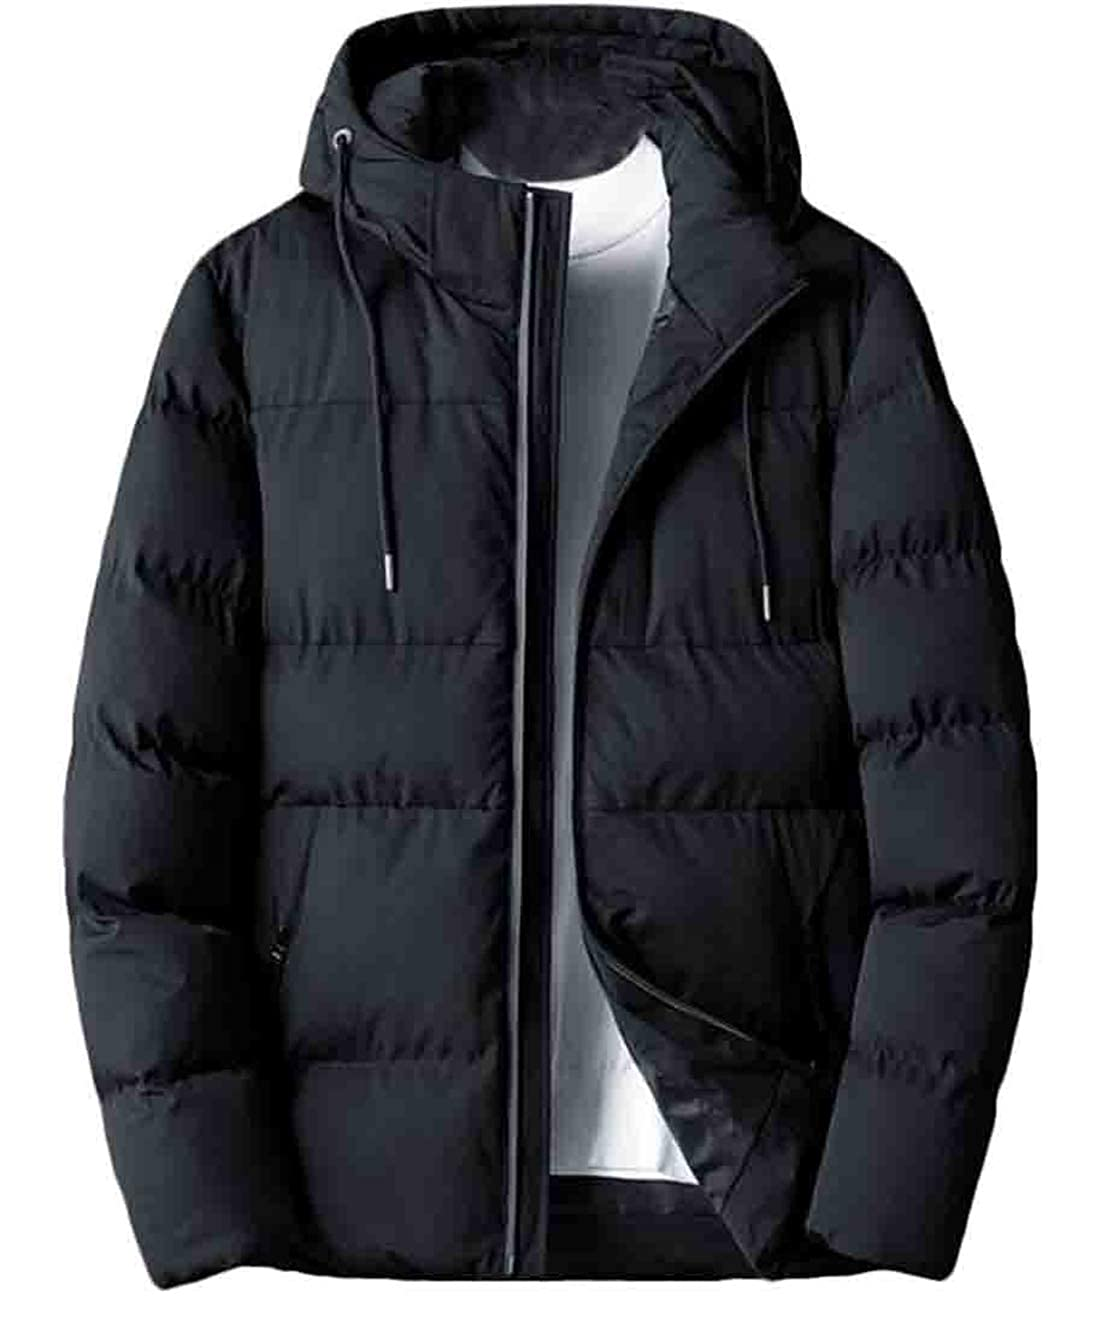 Hilization Mens Hooded Solid Winter Thicken Stylish Cotton Drawstring Puffer Jacket